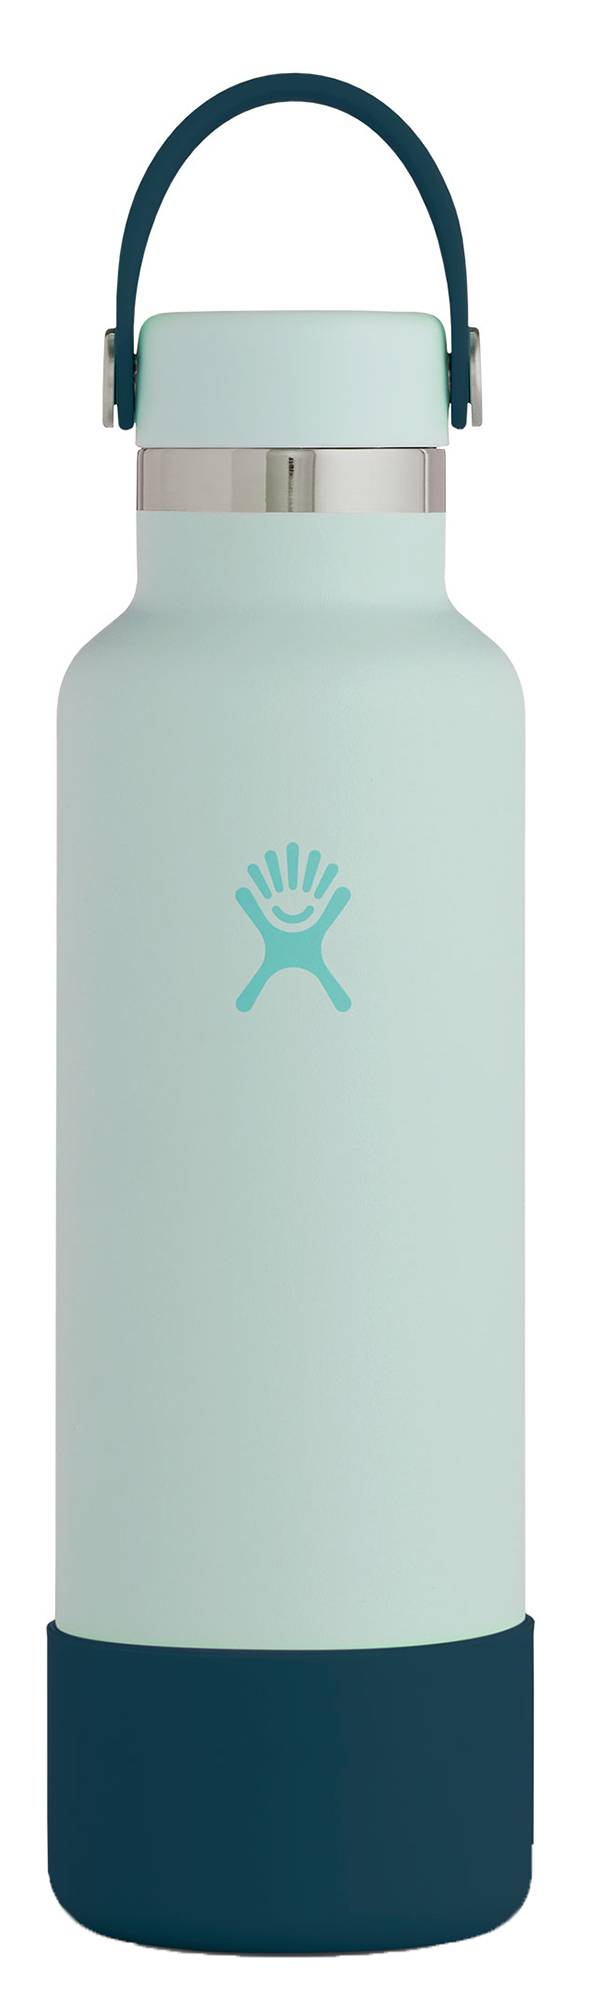 Hydro Flask Movement Collection 21 oz. Wide Mouth Bottle product image